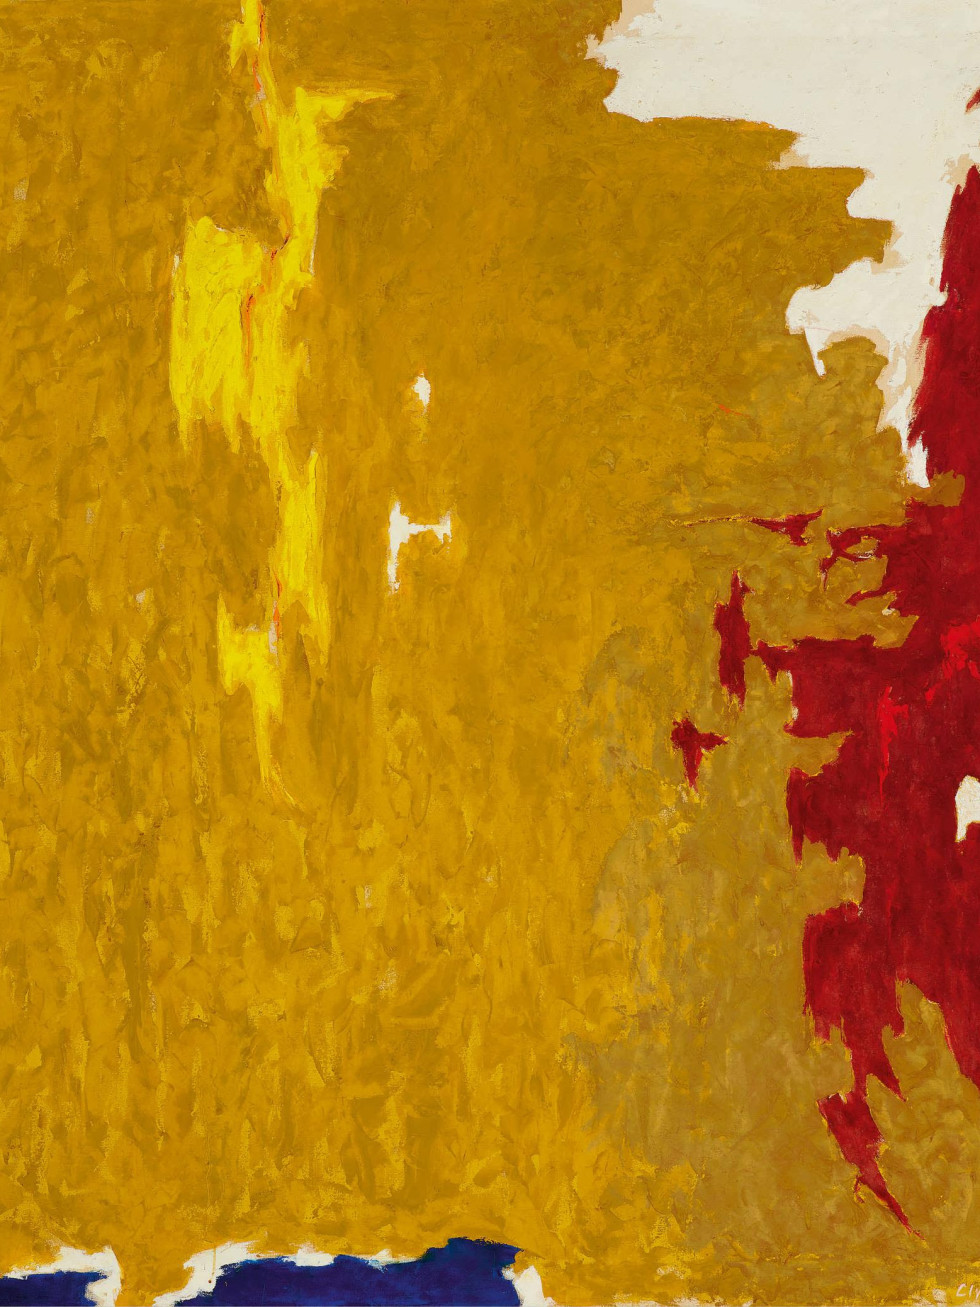 Clyfford Still, PH-125 (1948-No. 1), Anne Marion